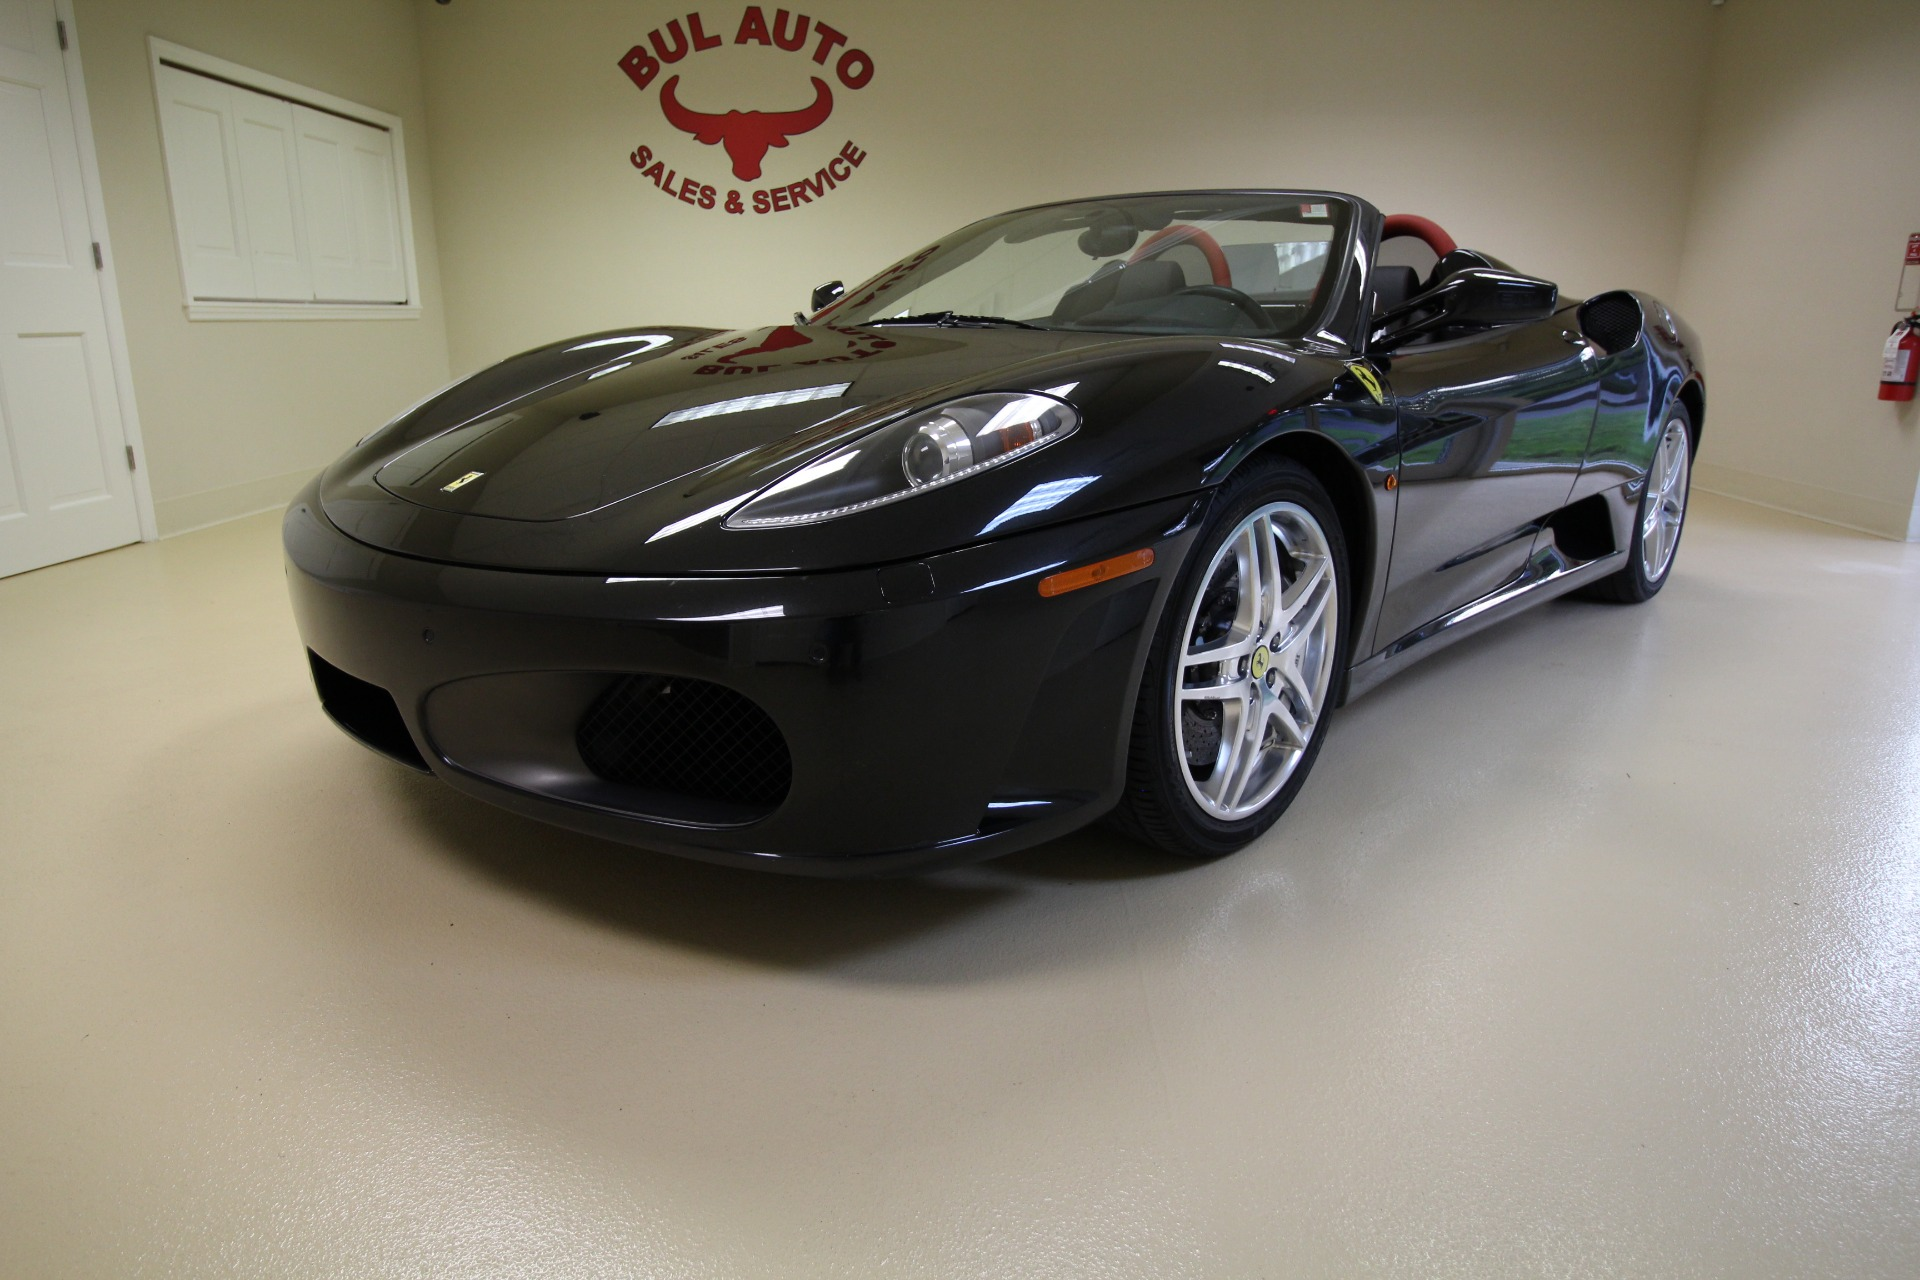 coupe maxresdefault youtube up for ferrari start overview watch used sale